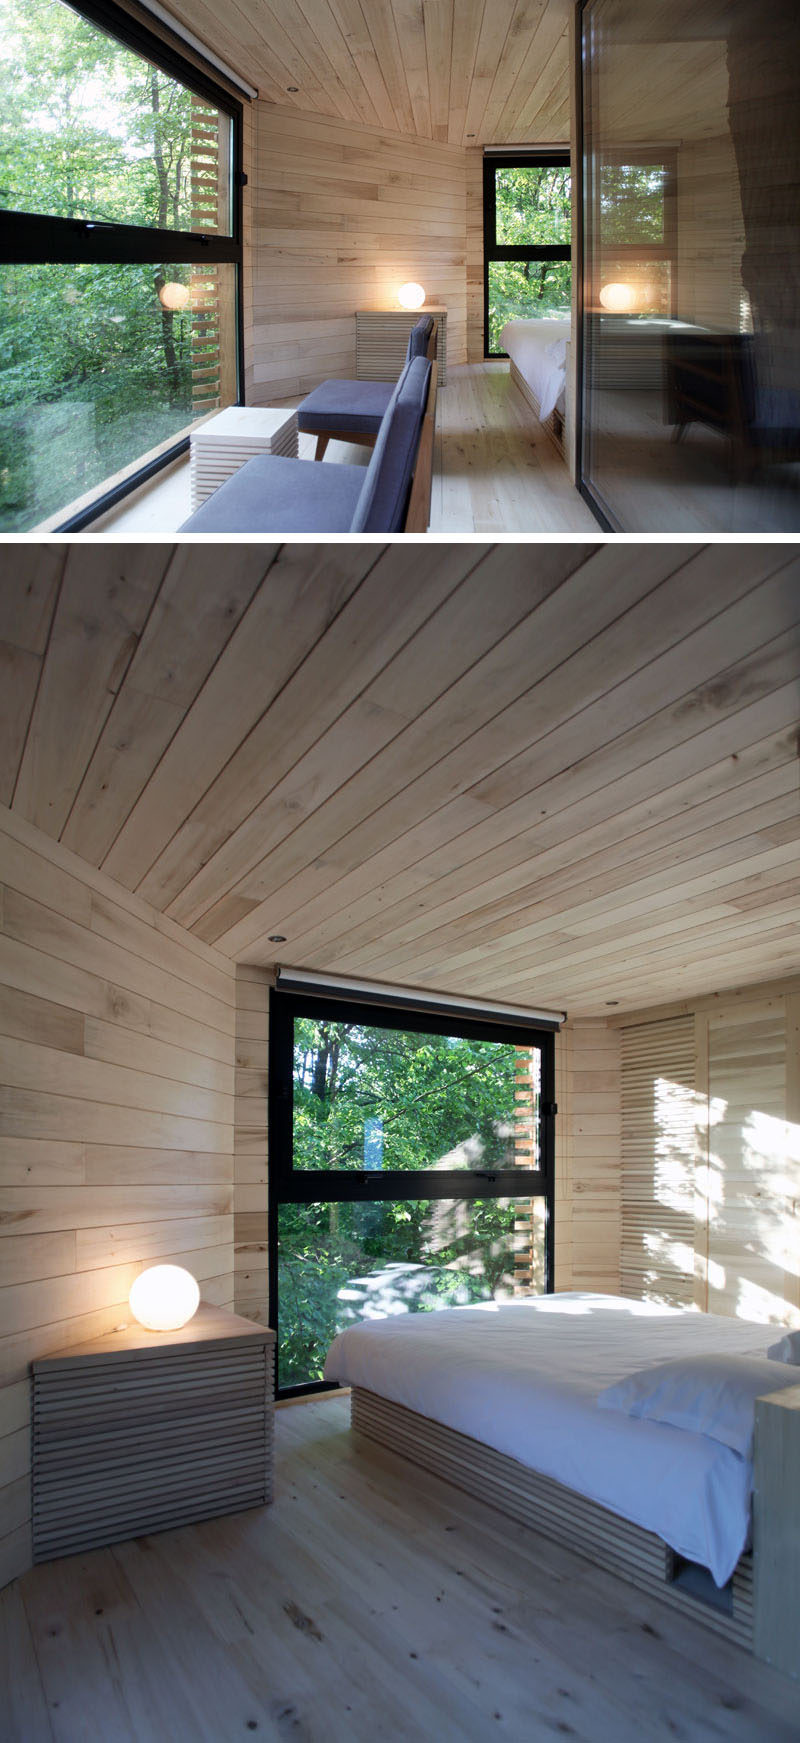 Inside this modern tree house, the wood interior is made from poplar, and a small sitting area and bedroom provide a comfortable place for relaxation. #ModernTreeHouse #Poplar #WoodInterior